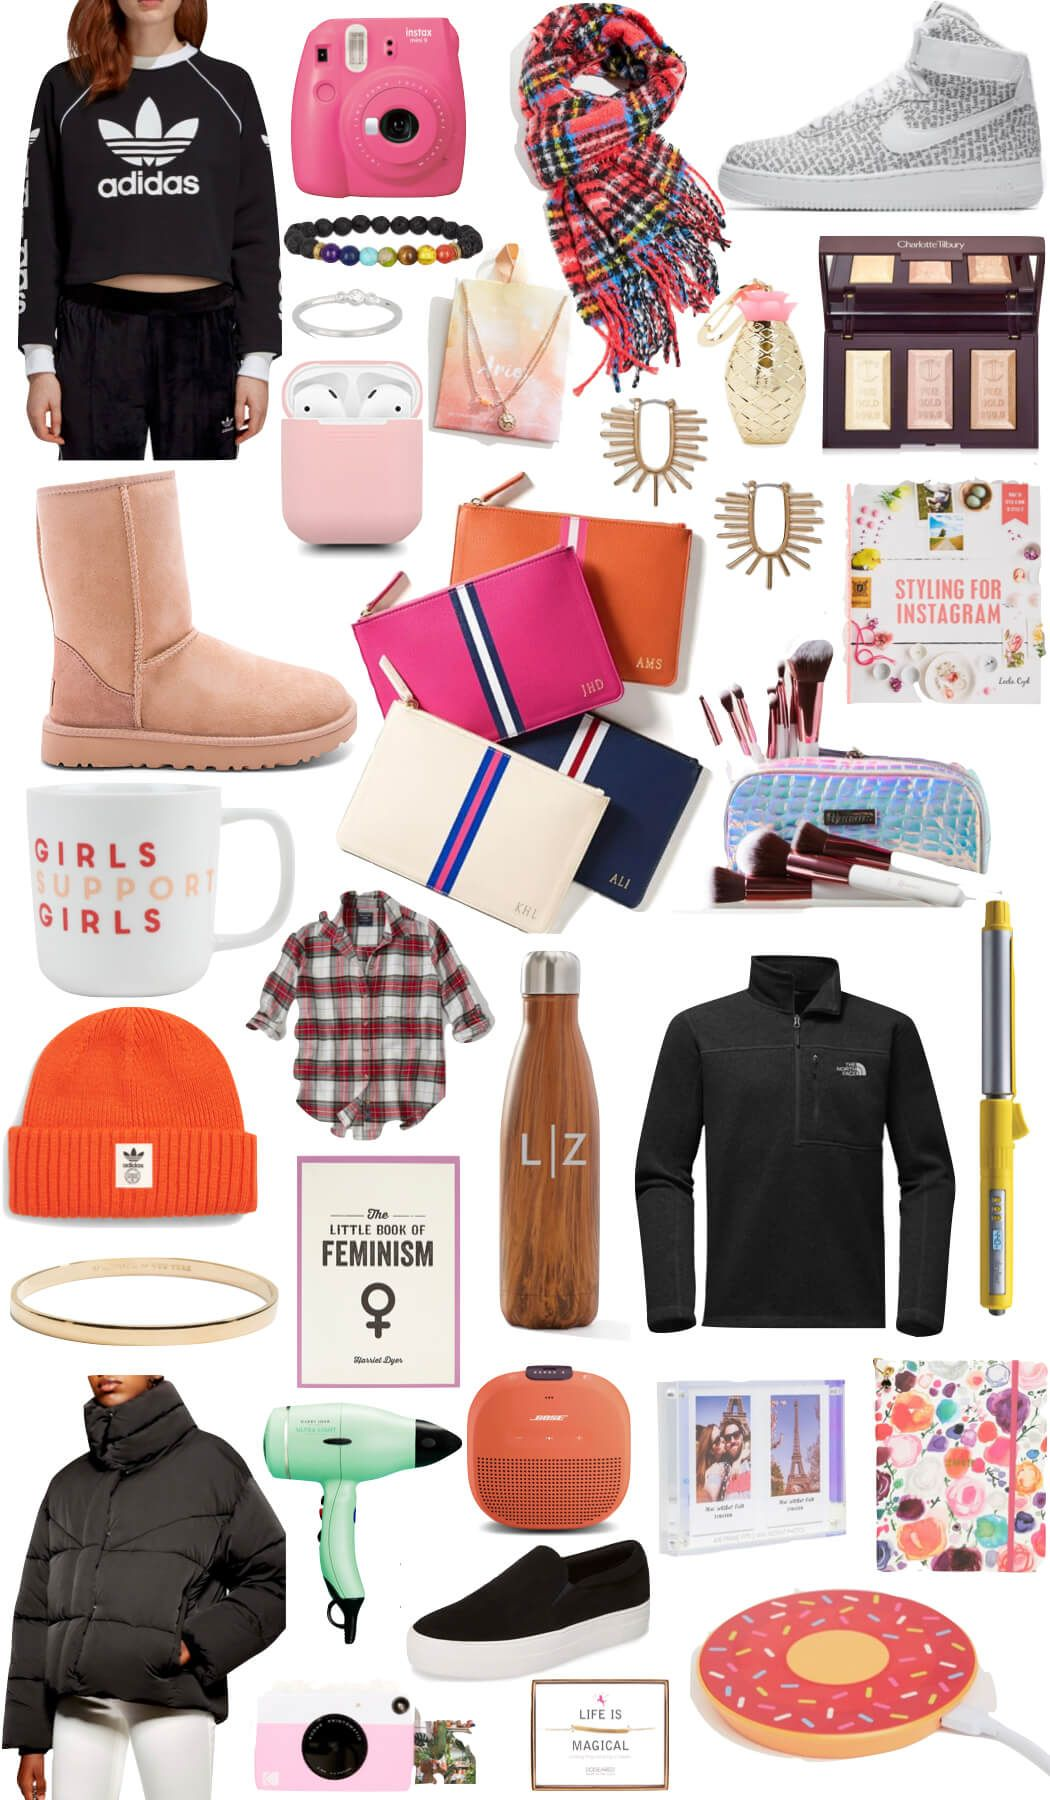 Kikis List | Birthday gifts for teens, Gifts for teens